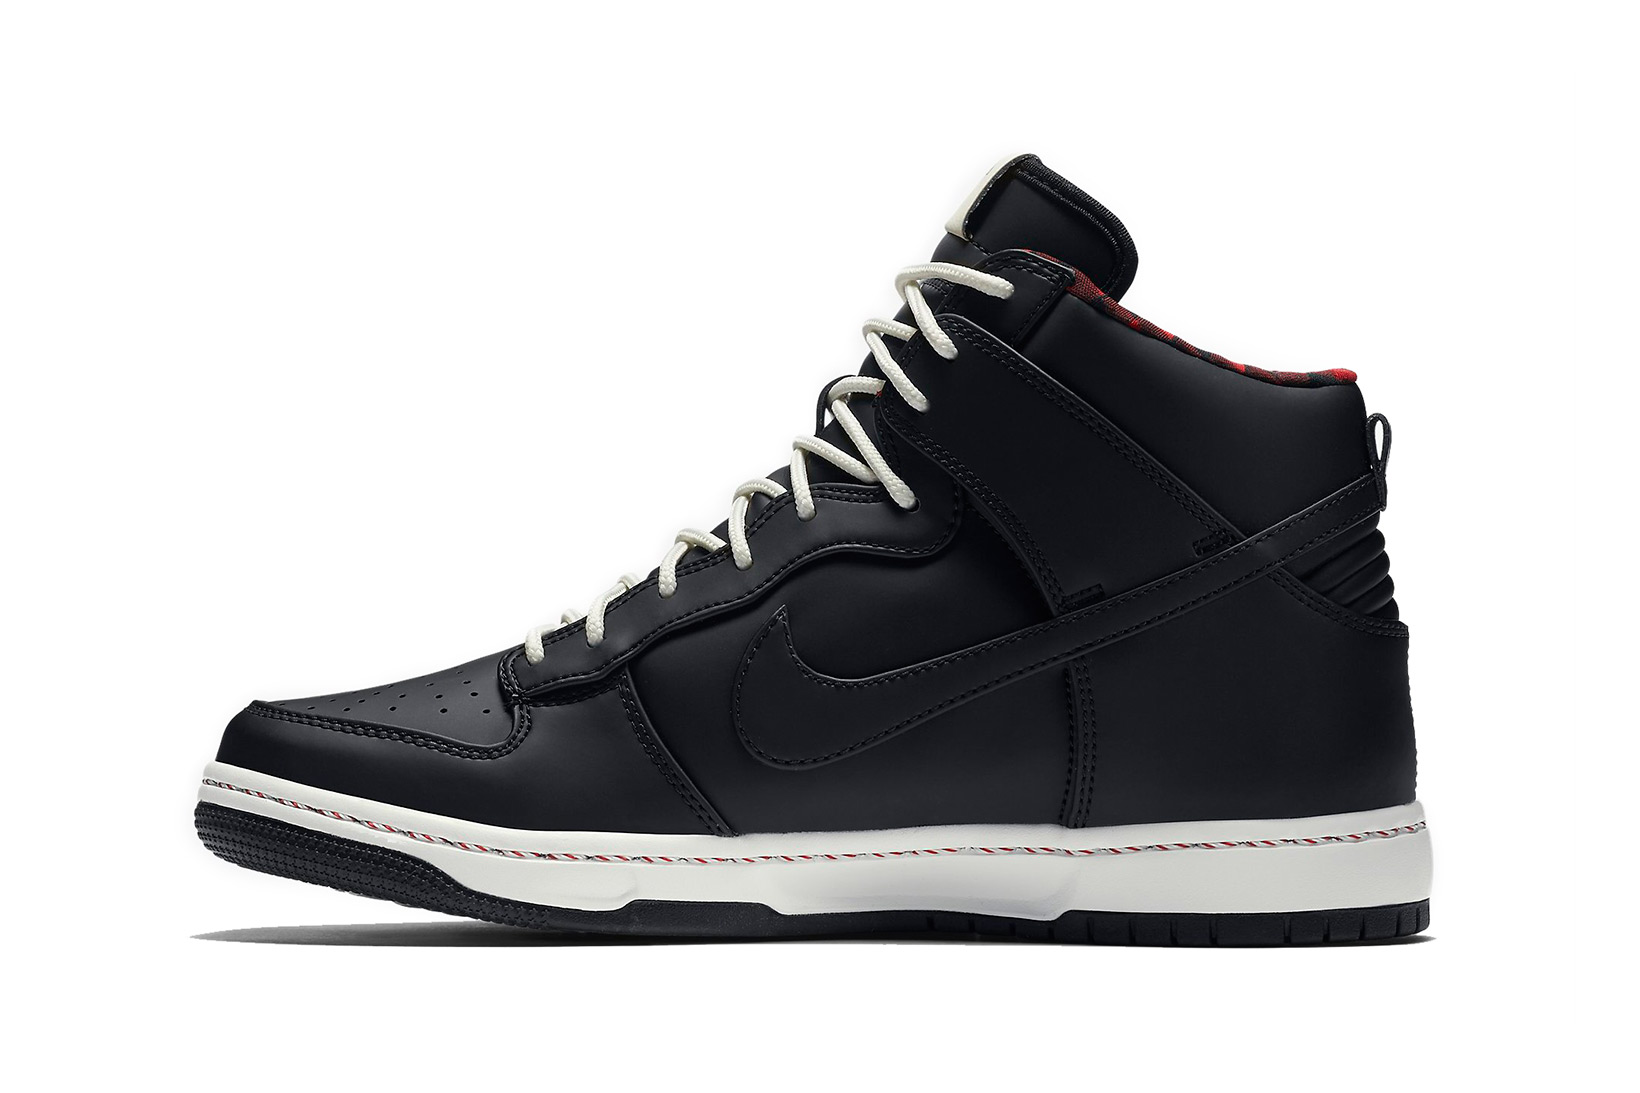 Harsh Weather Will Be No Match for the Nike Dunk Ultra